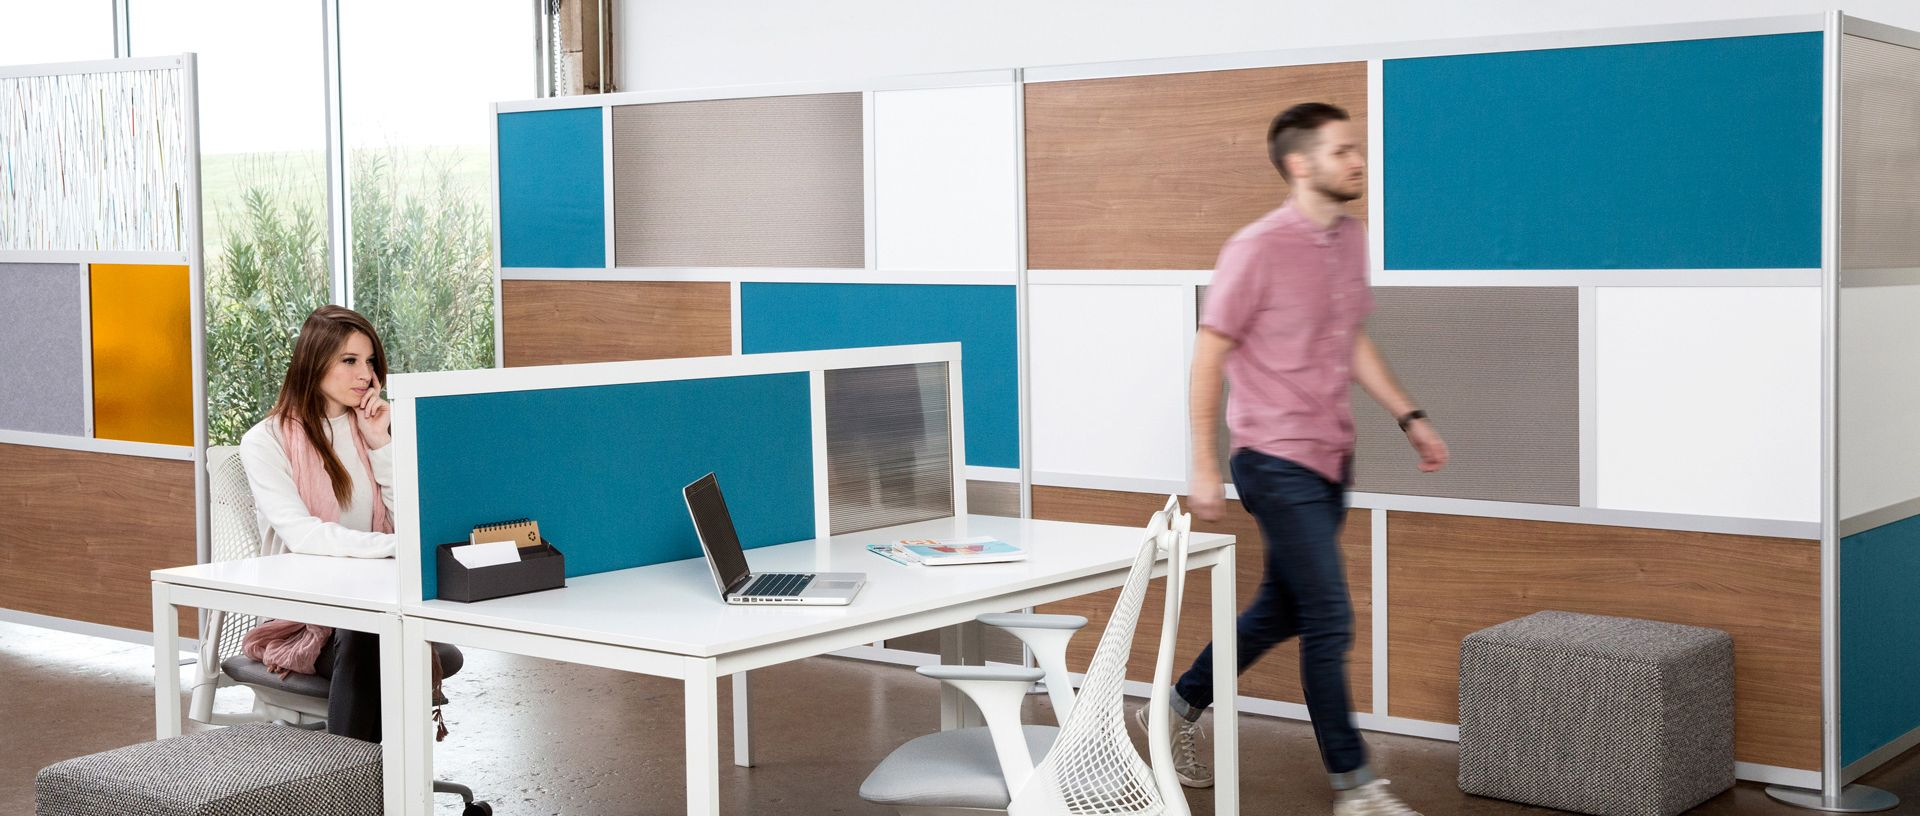 Room Divider And Partition Manufacturing Company. We Create Innovative Space  Solutions For Your Home And Office.